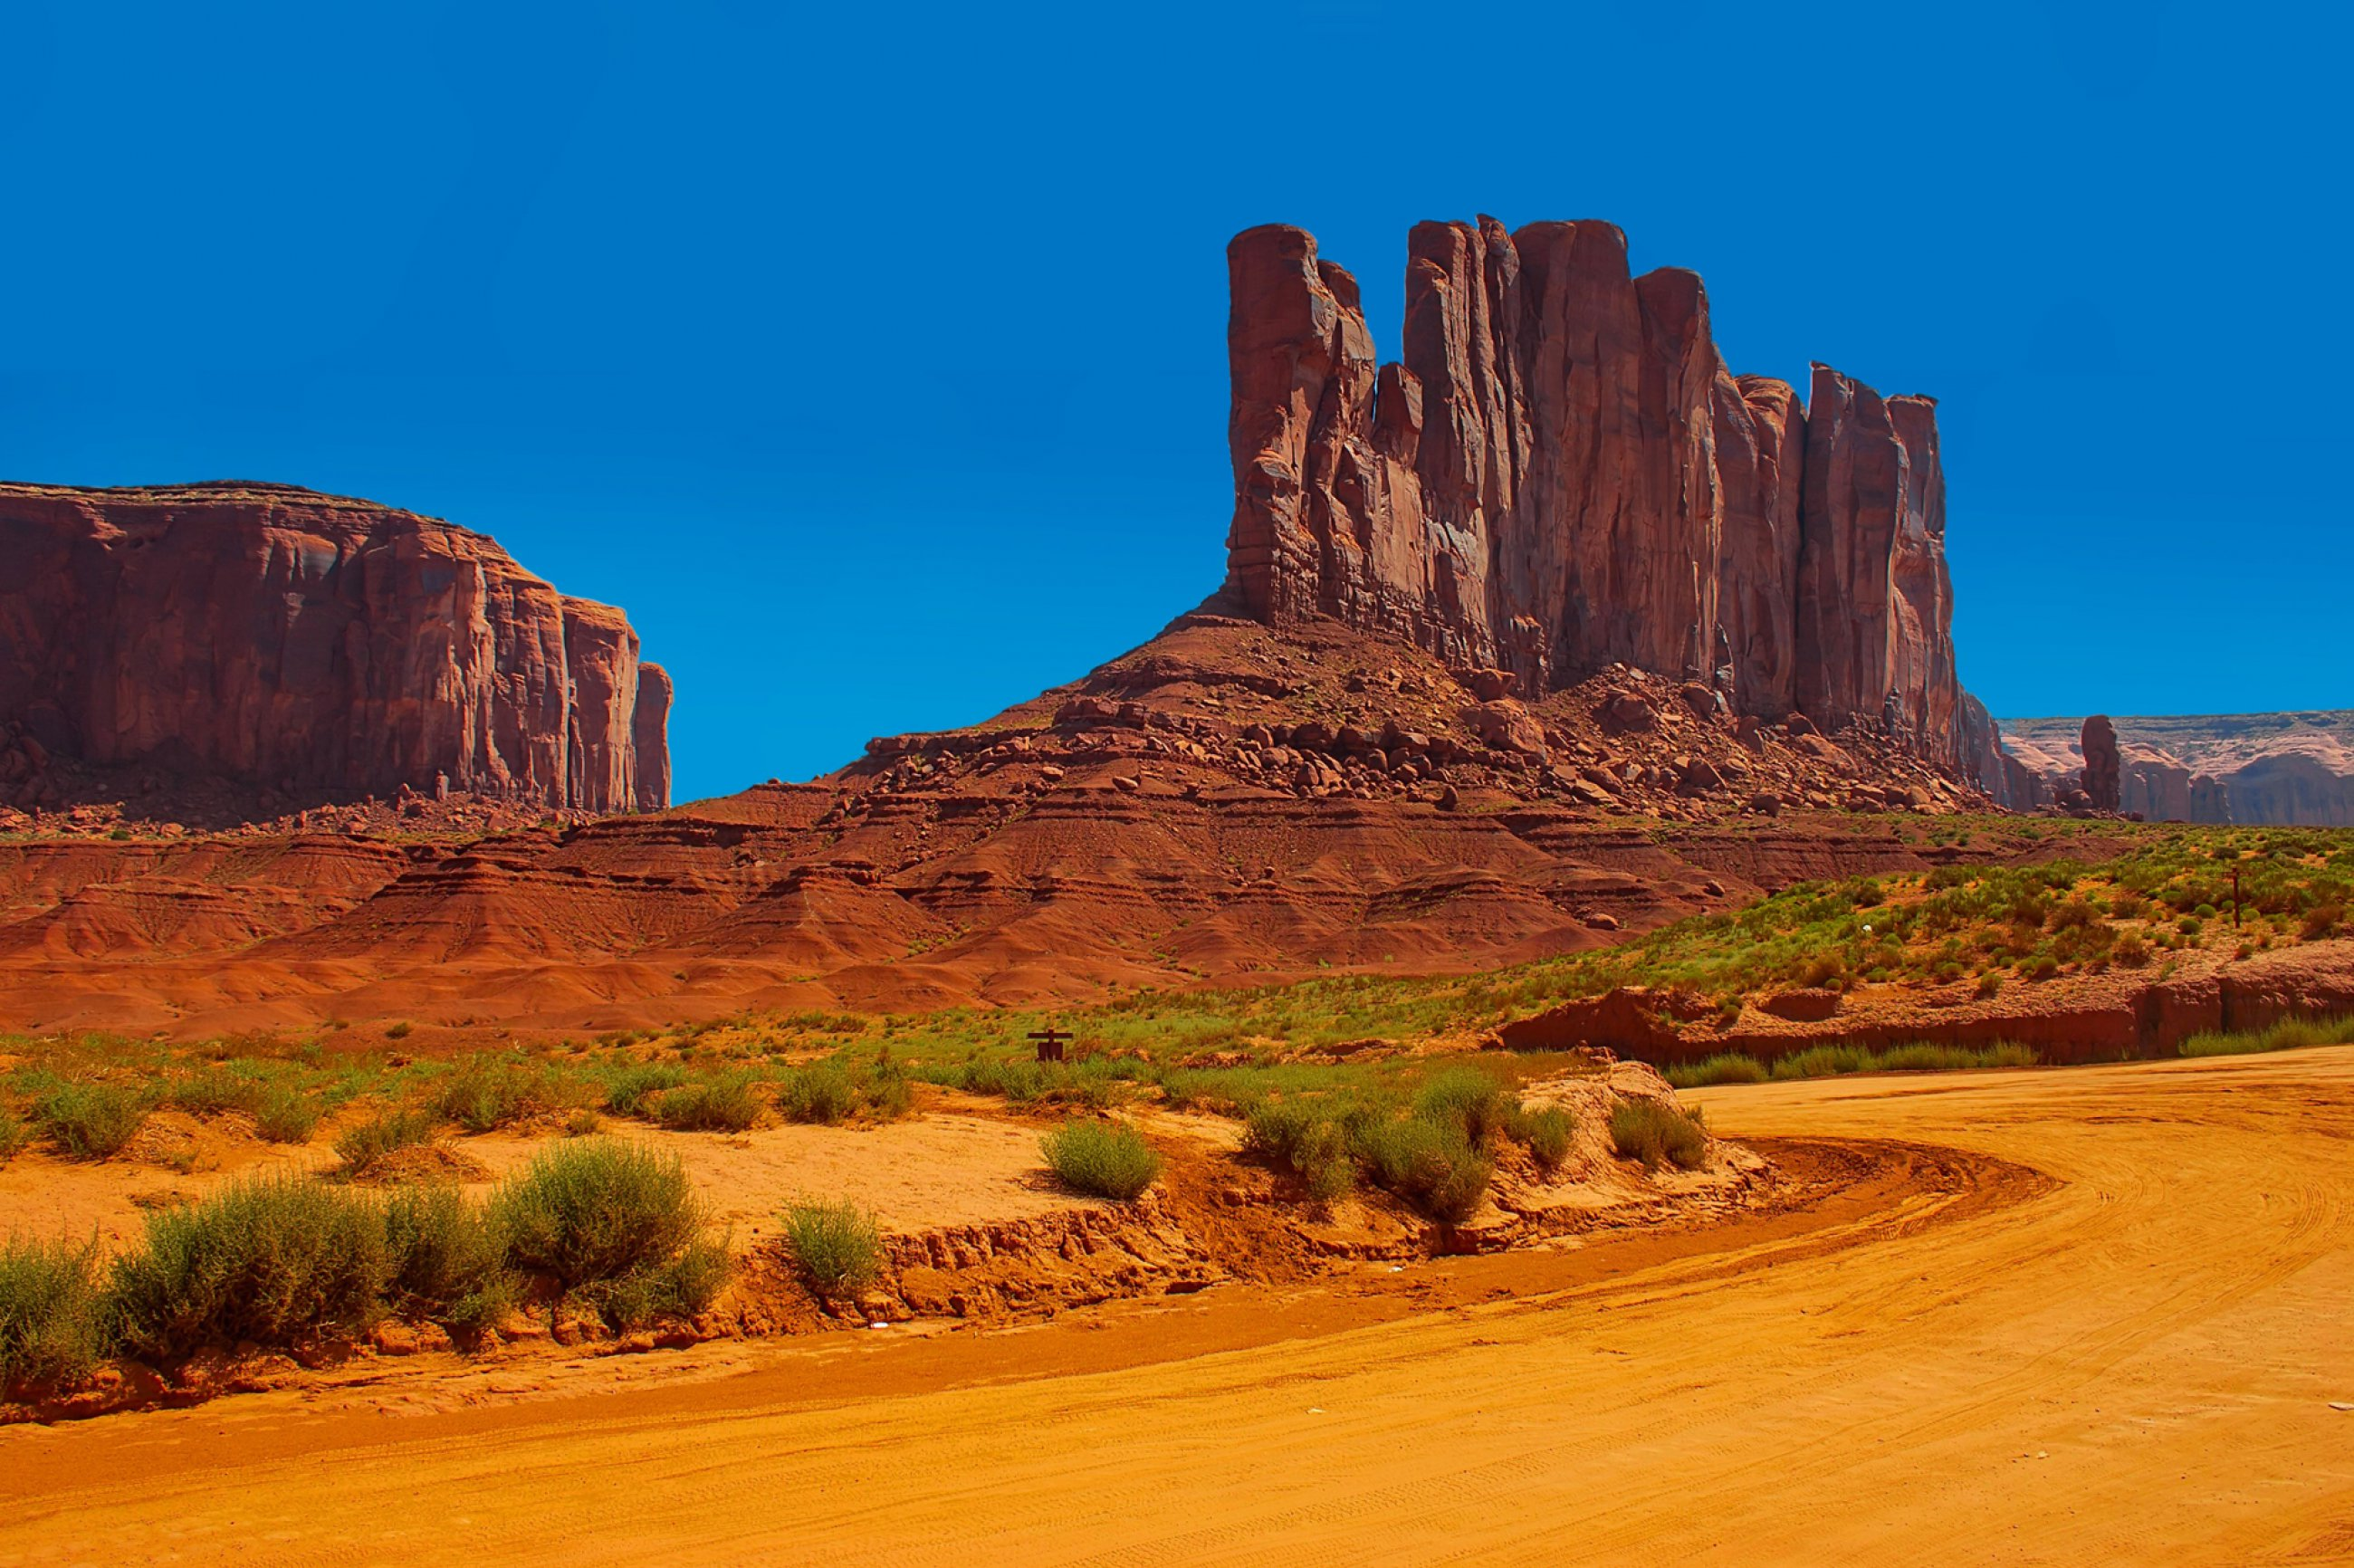 https://bubo.sk/uploads/galleries/16241/monument-valley-dreamstime-xl-28384727.jpg